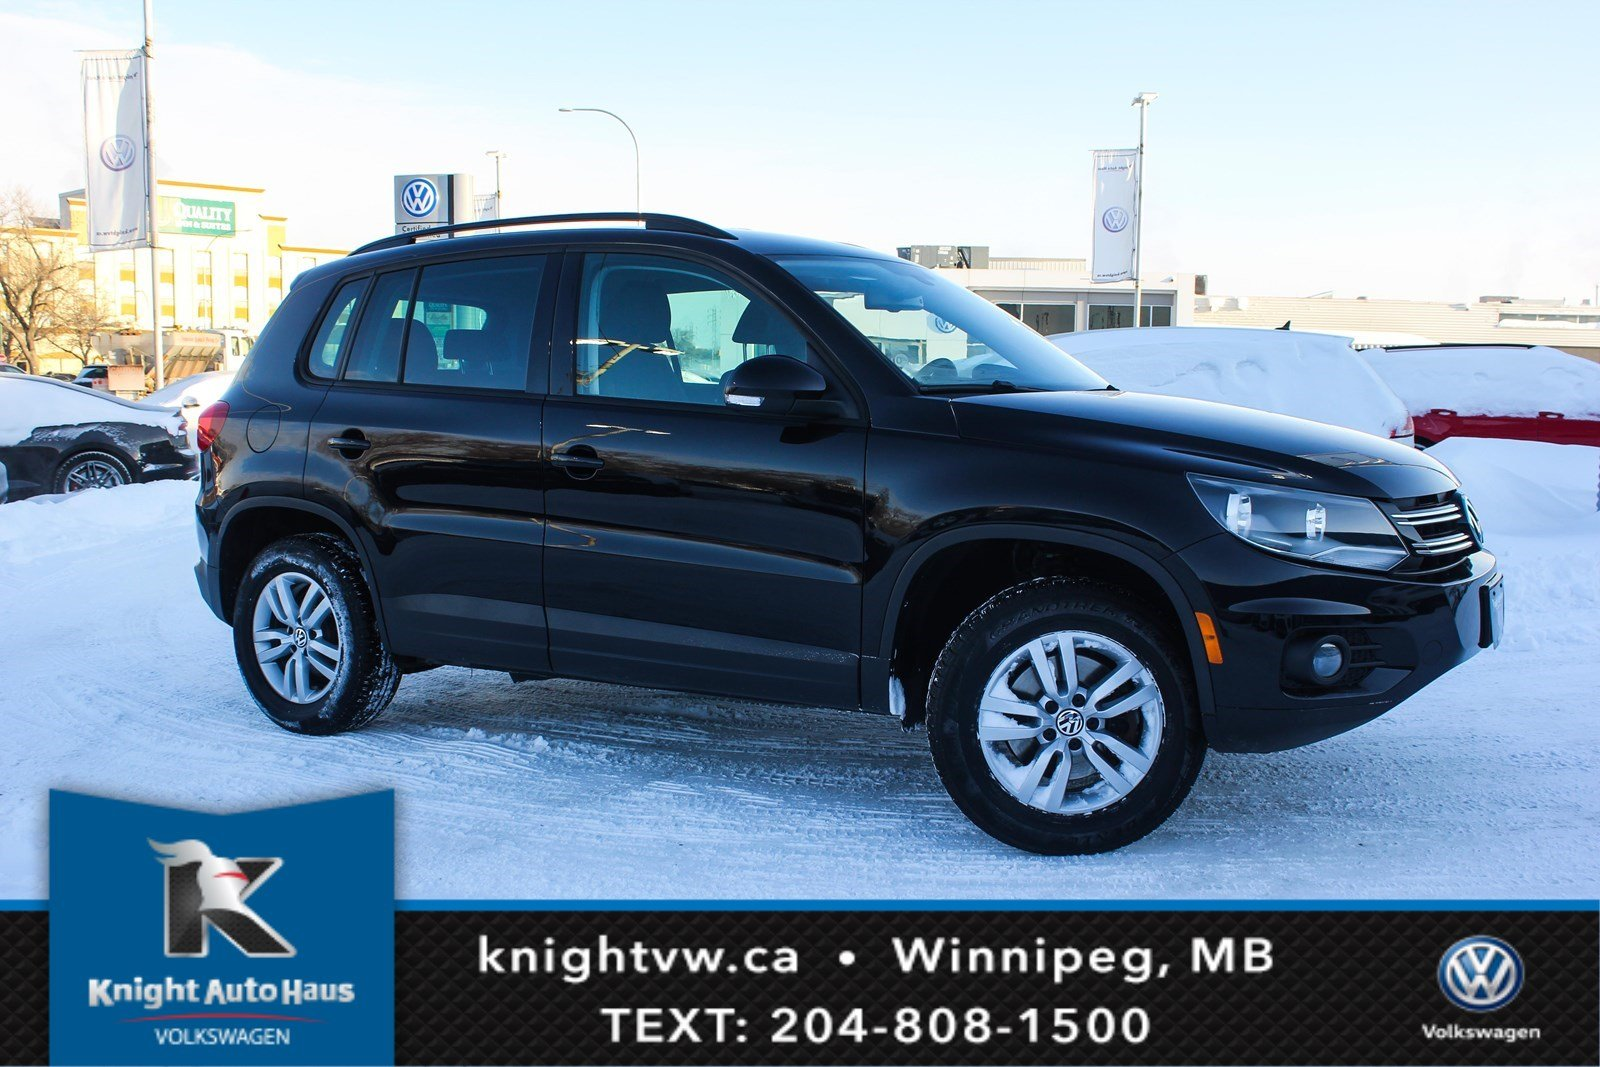 Certified Pre-Owned 2016 Volkswagen Tiguan Trendline w/Heated Seats 0.9% Financing Available OAC.